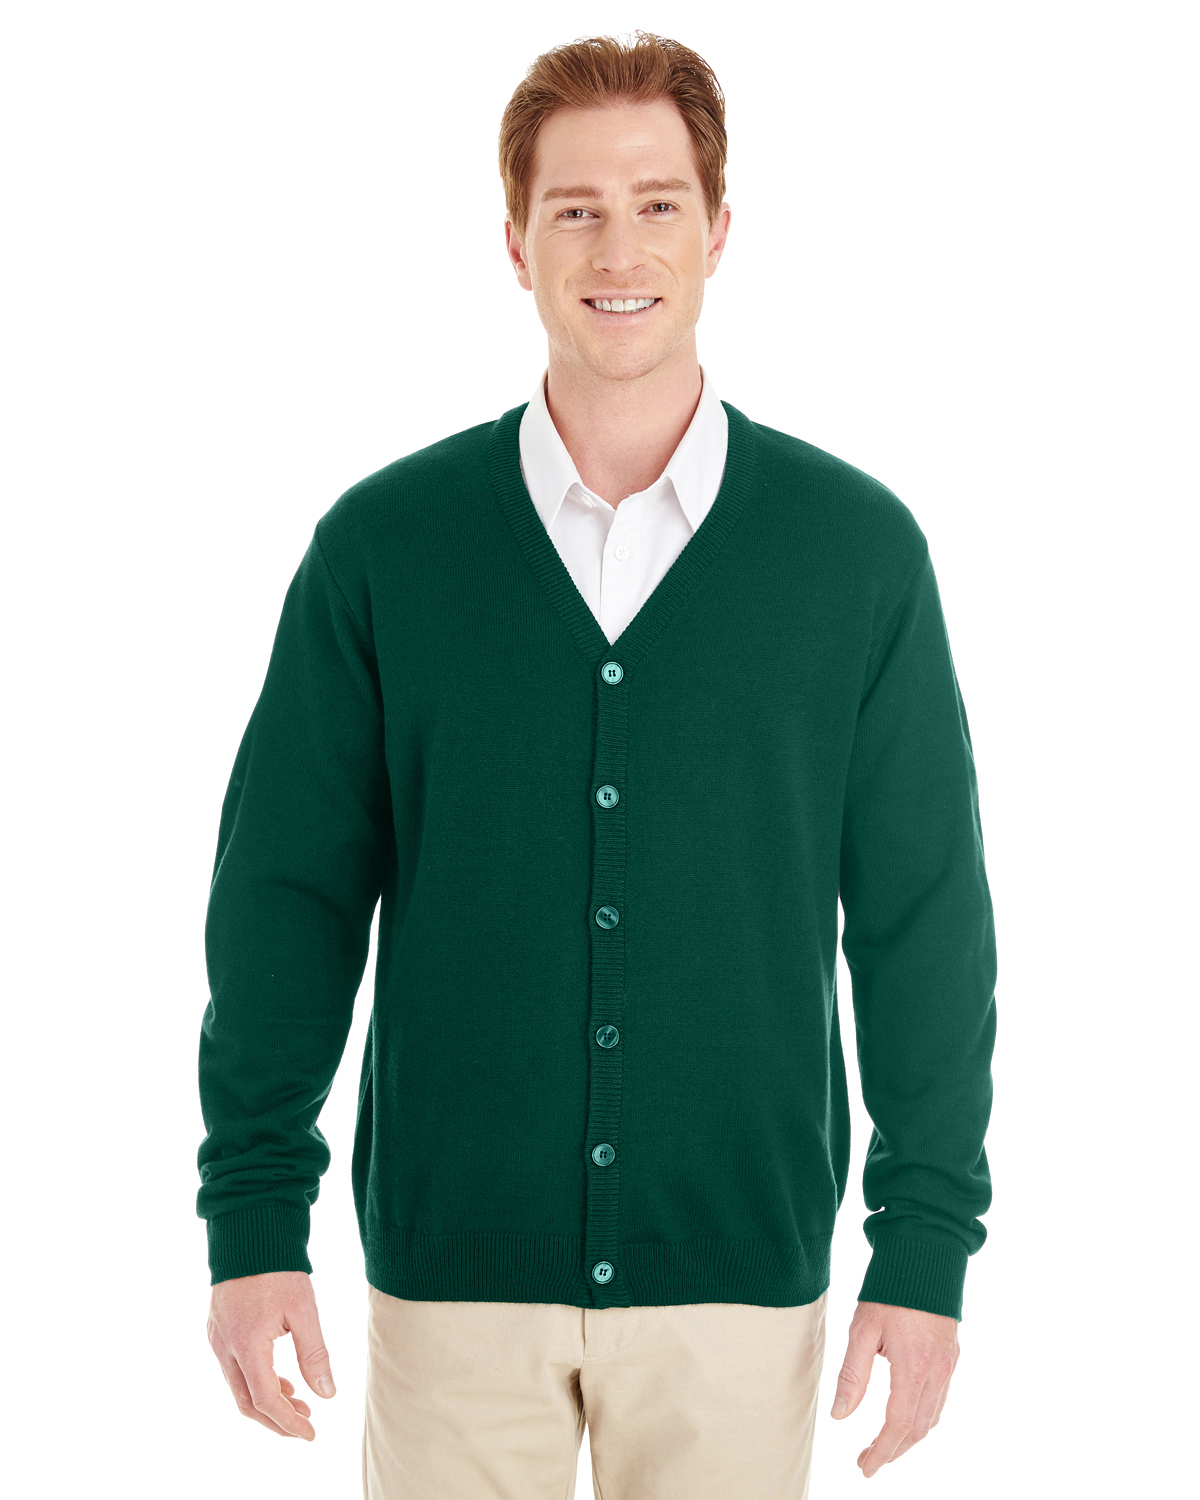 Harriton M425 - Men's Pilbloc™ V-Neck Button Cardigan Sweater